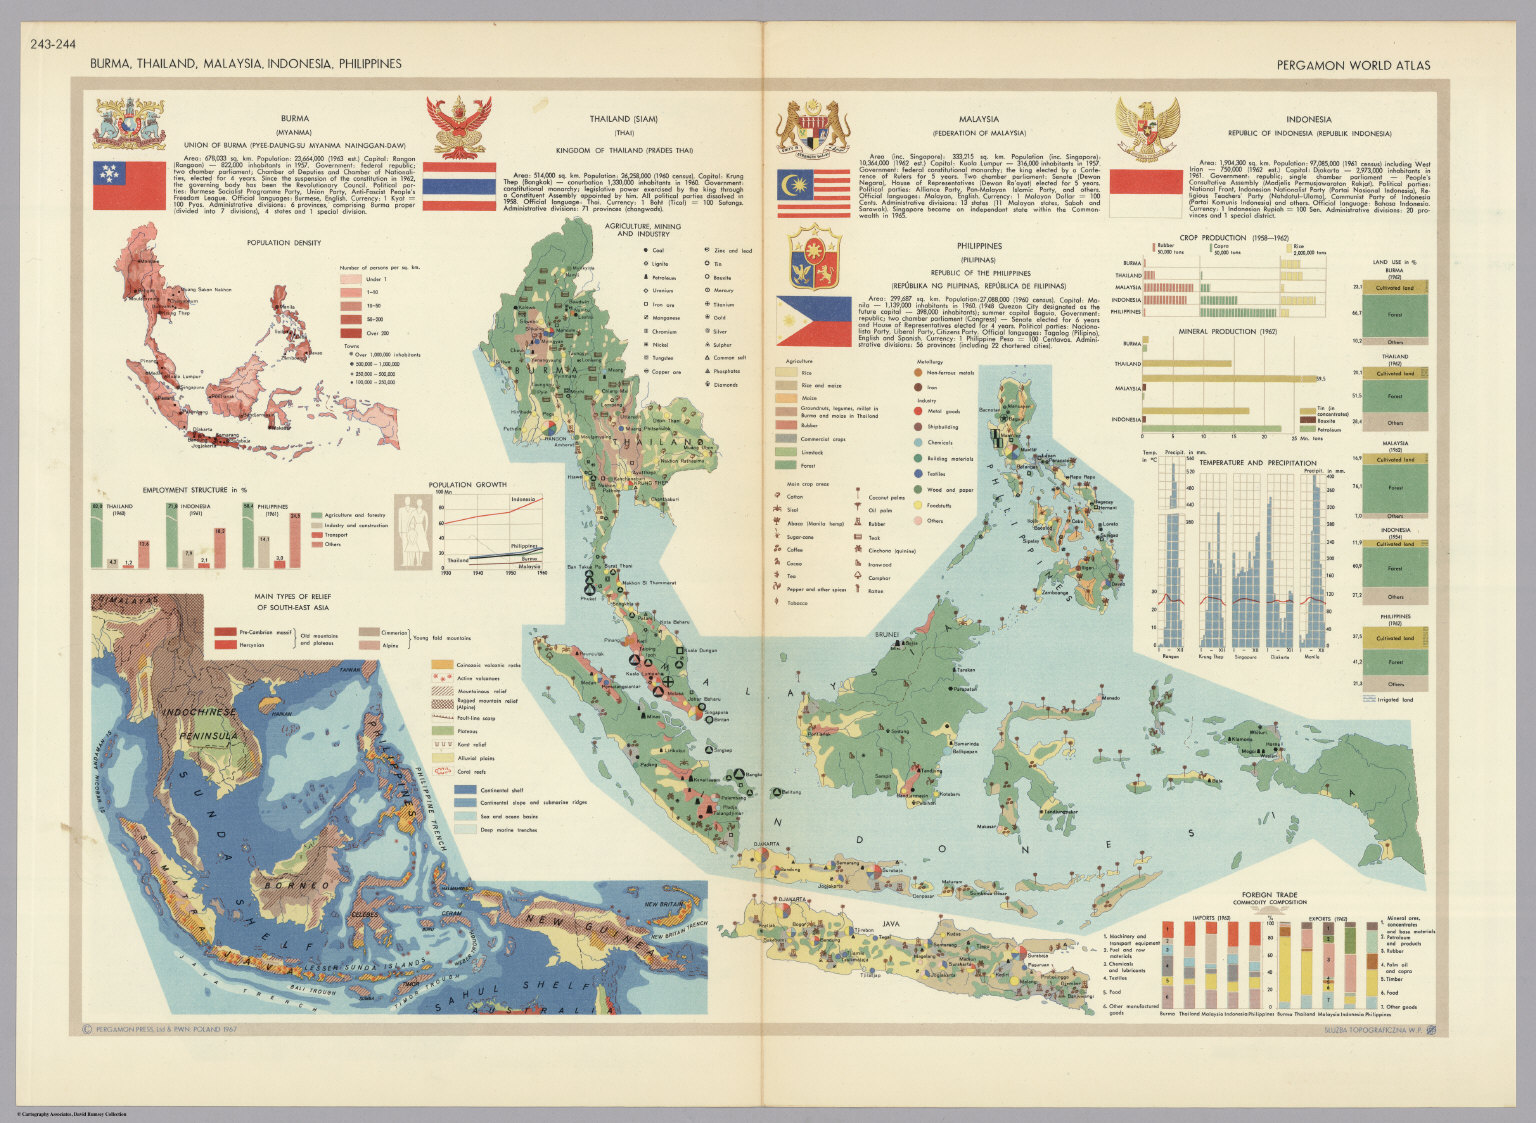 Burma thailand malaysia indonesia philippines pergamon world burma thailand malaysia indonesia philippines pergamon world atlas gumiabroncs